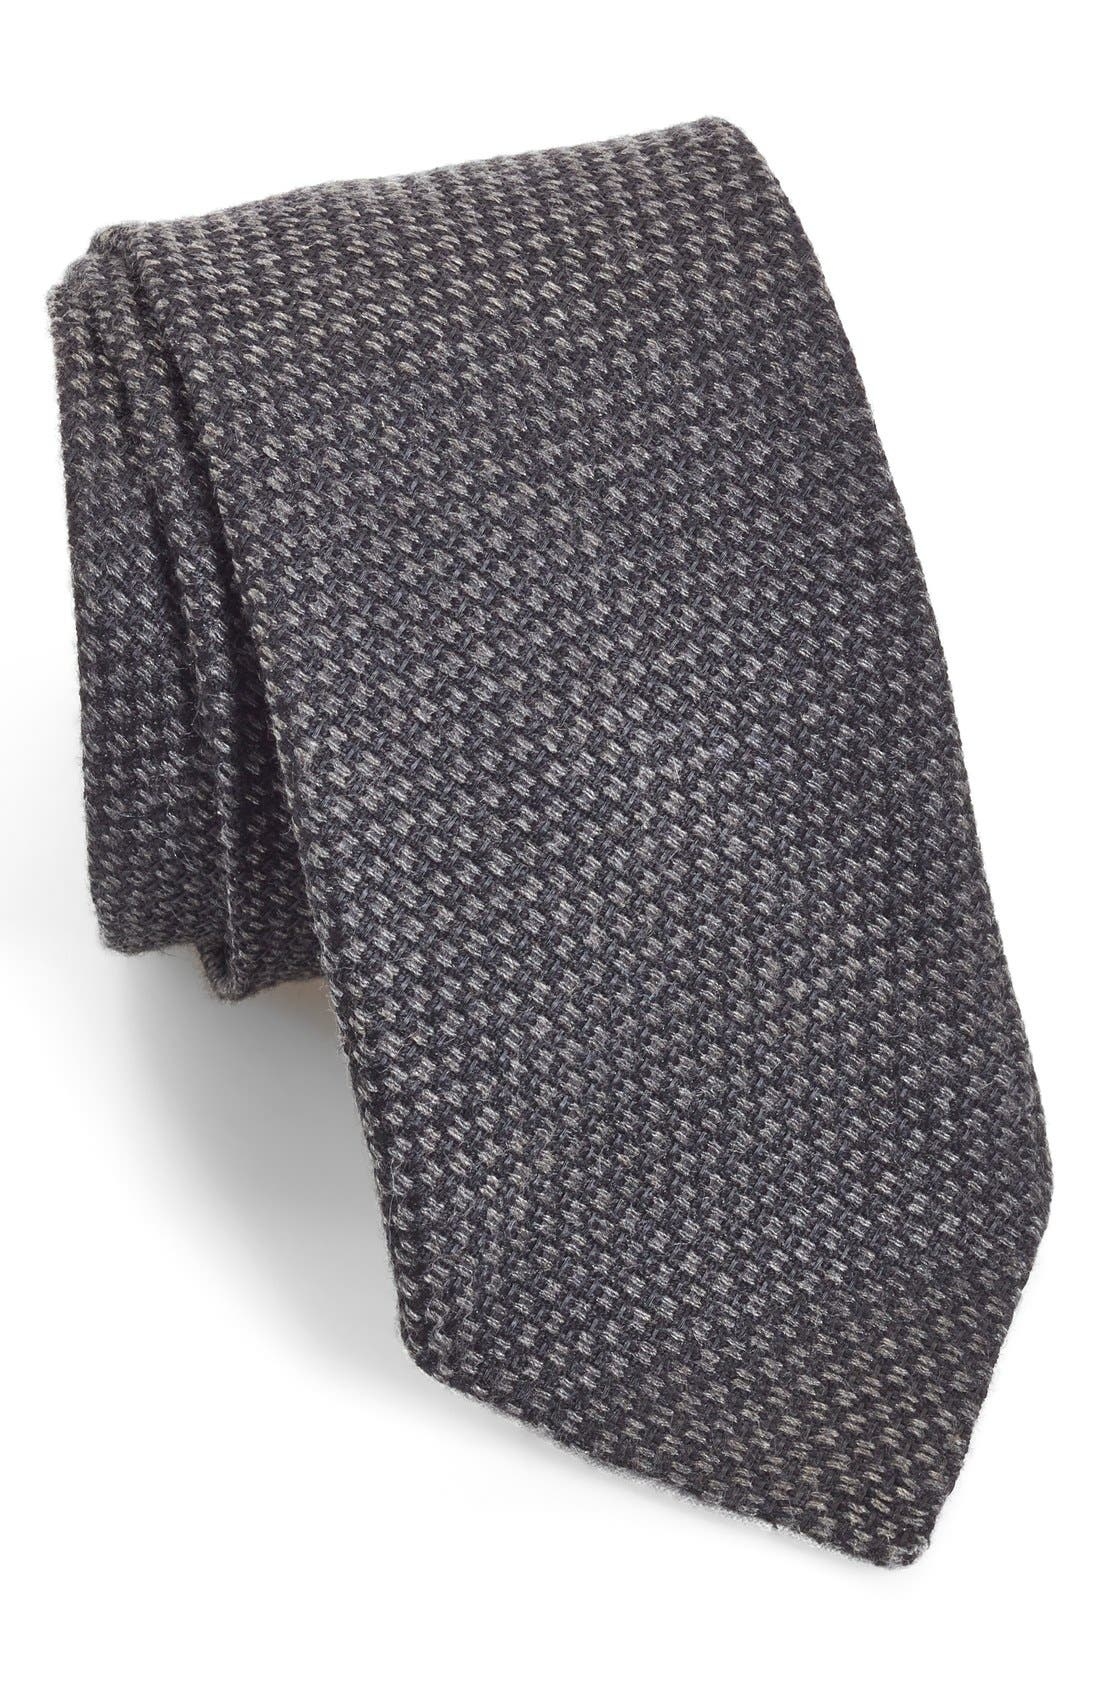 Alternate Image 1 Selected - John W. Nordstrom® Woven Silk & Cotton Tie